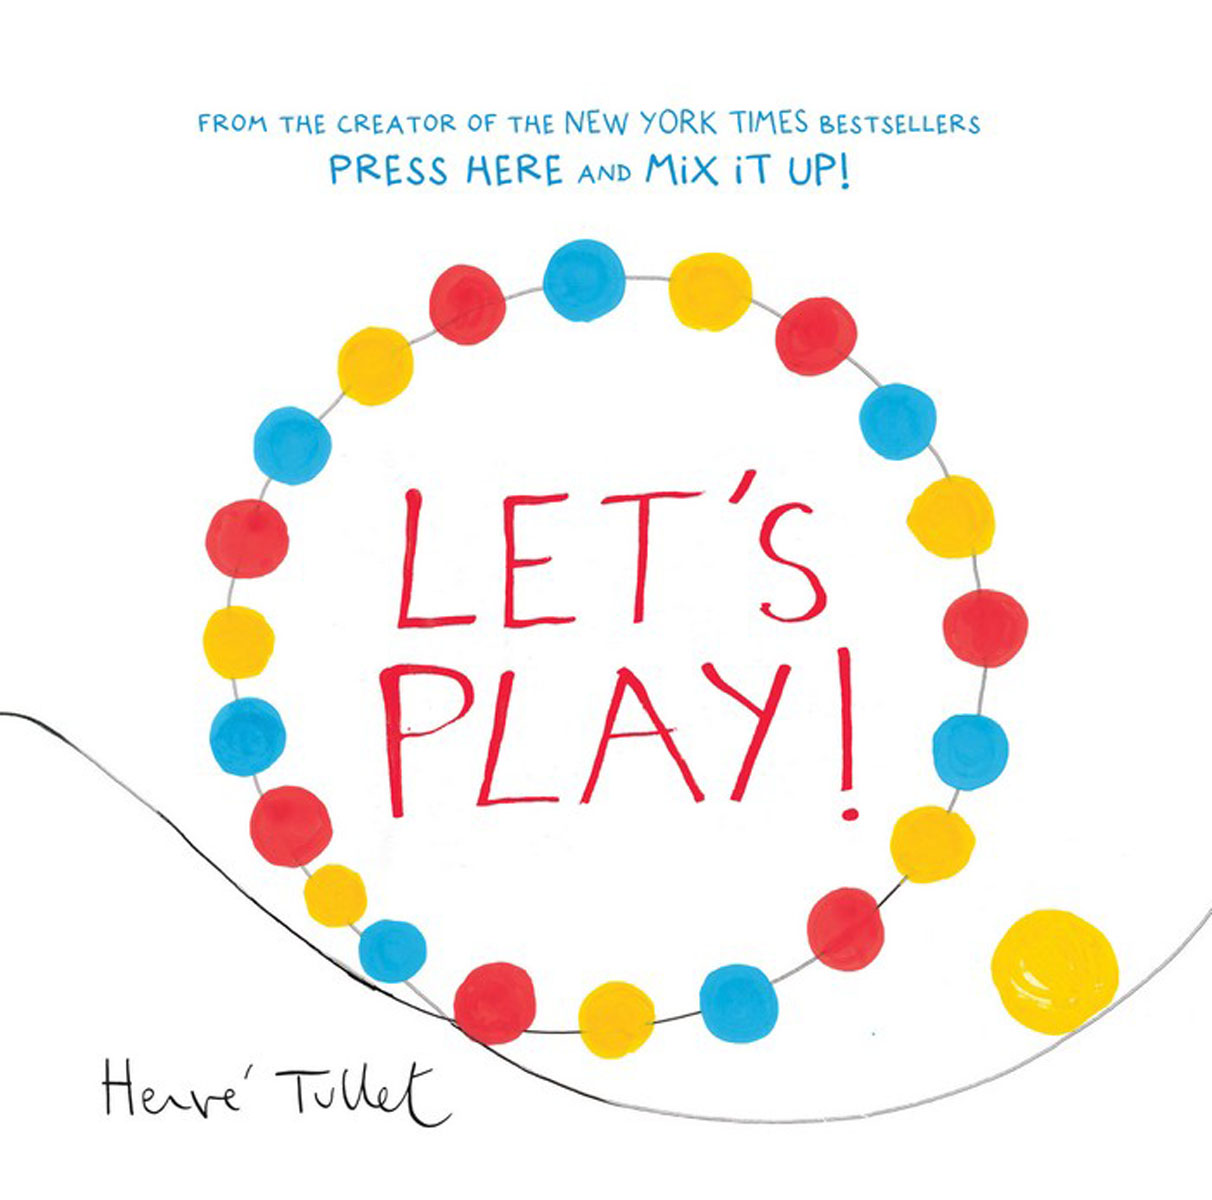 Let's Play! the dot